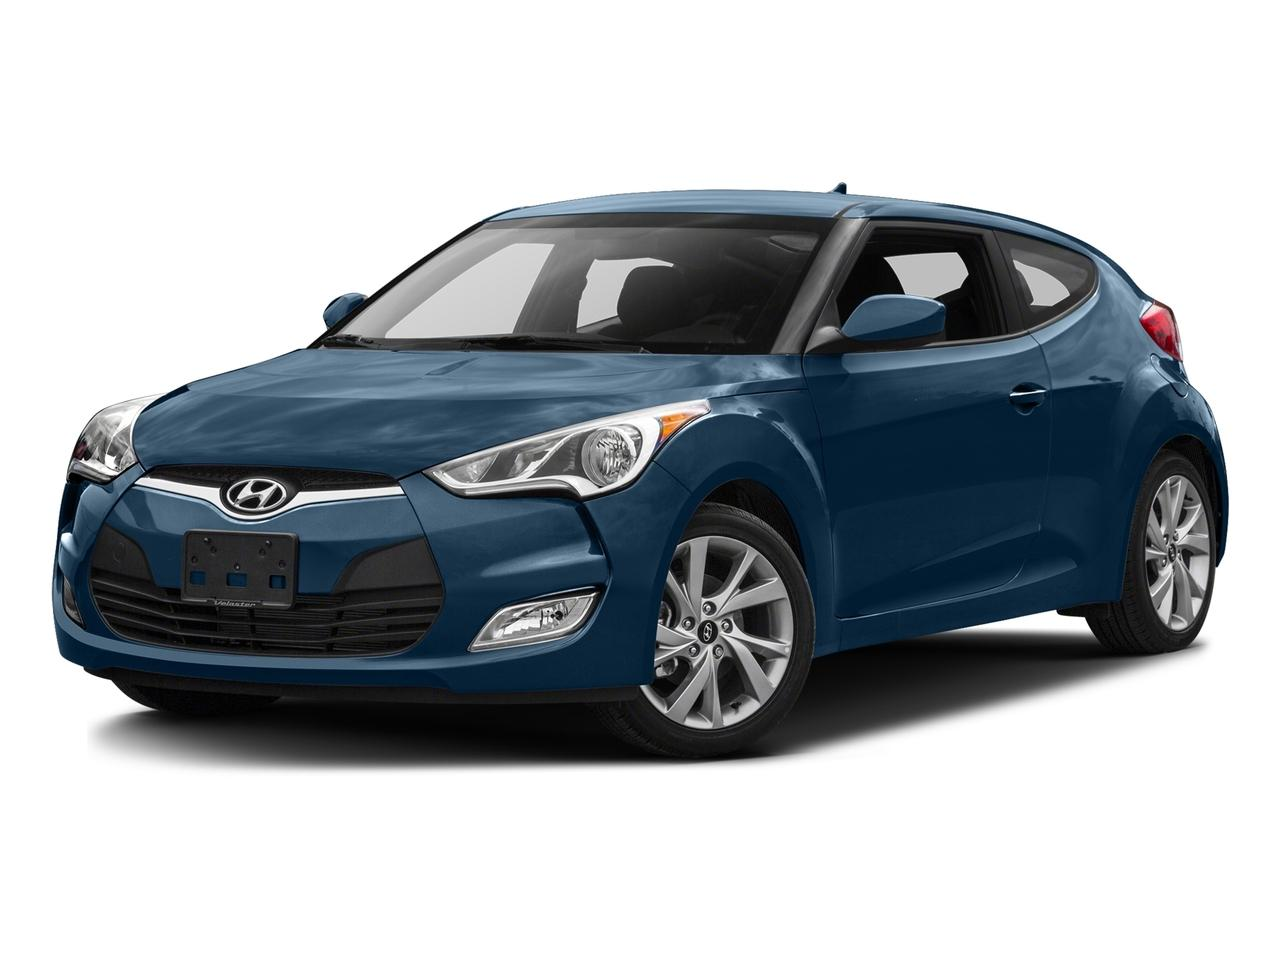 2017 Hyundai Veloster Vehicle Photo in Frederick, MD 21704